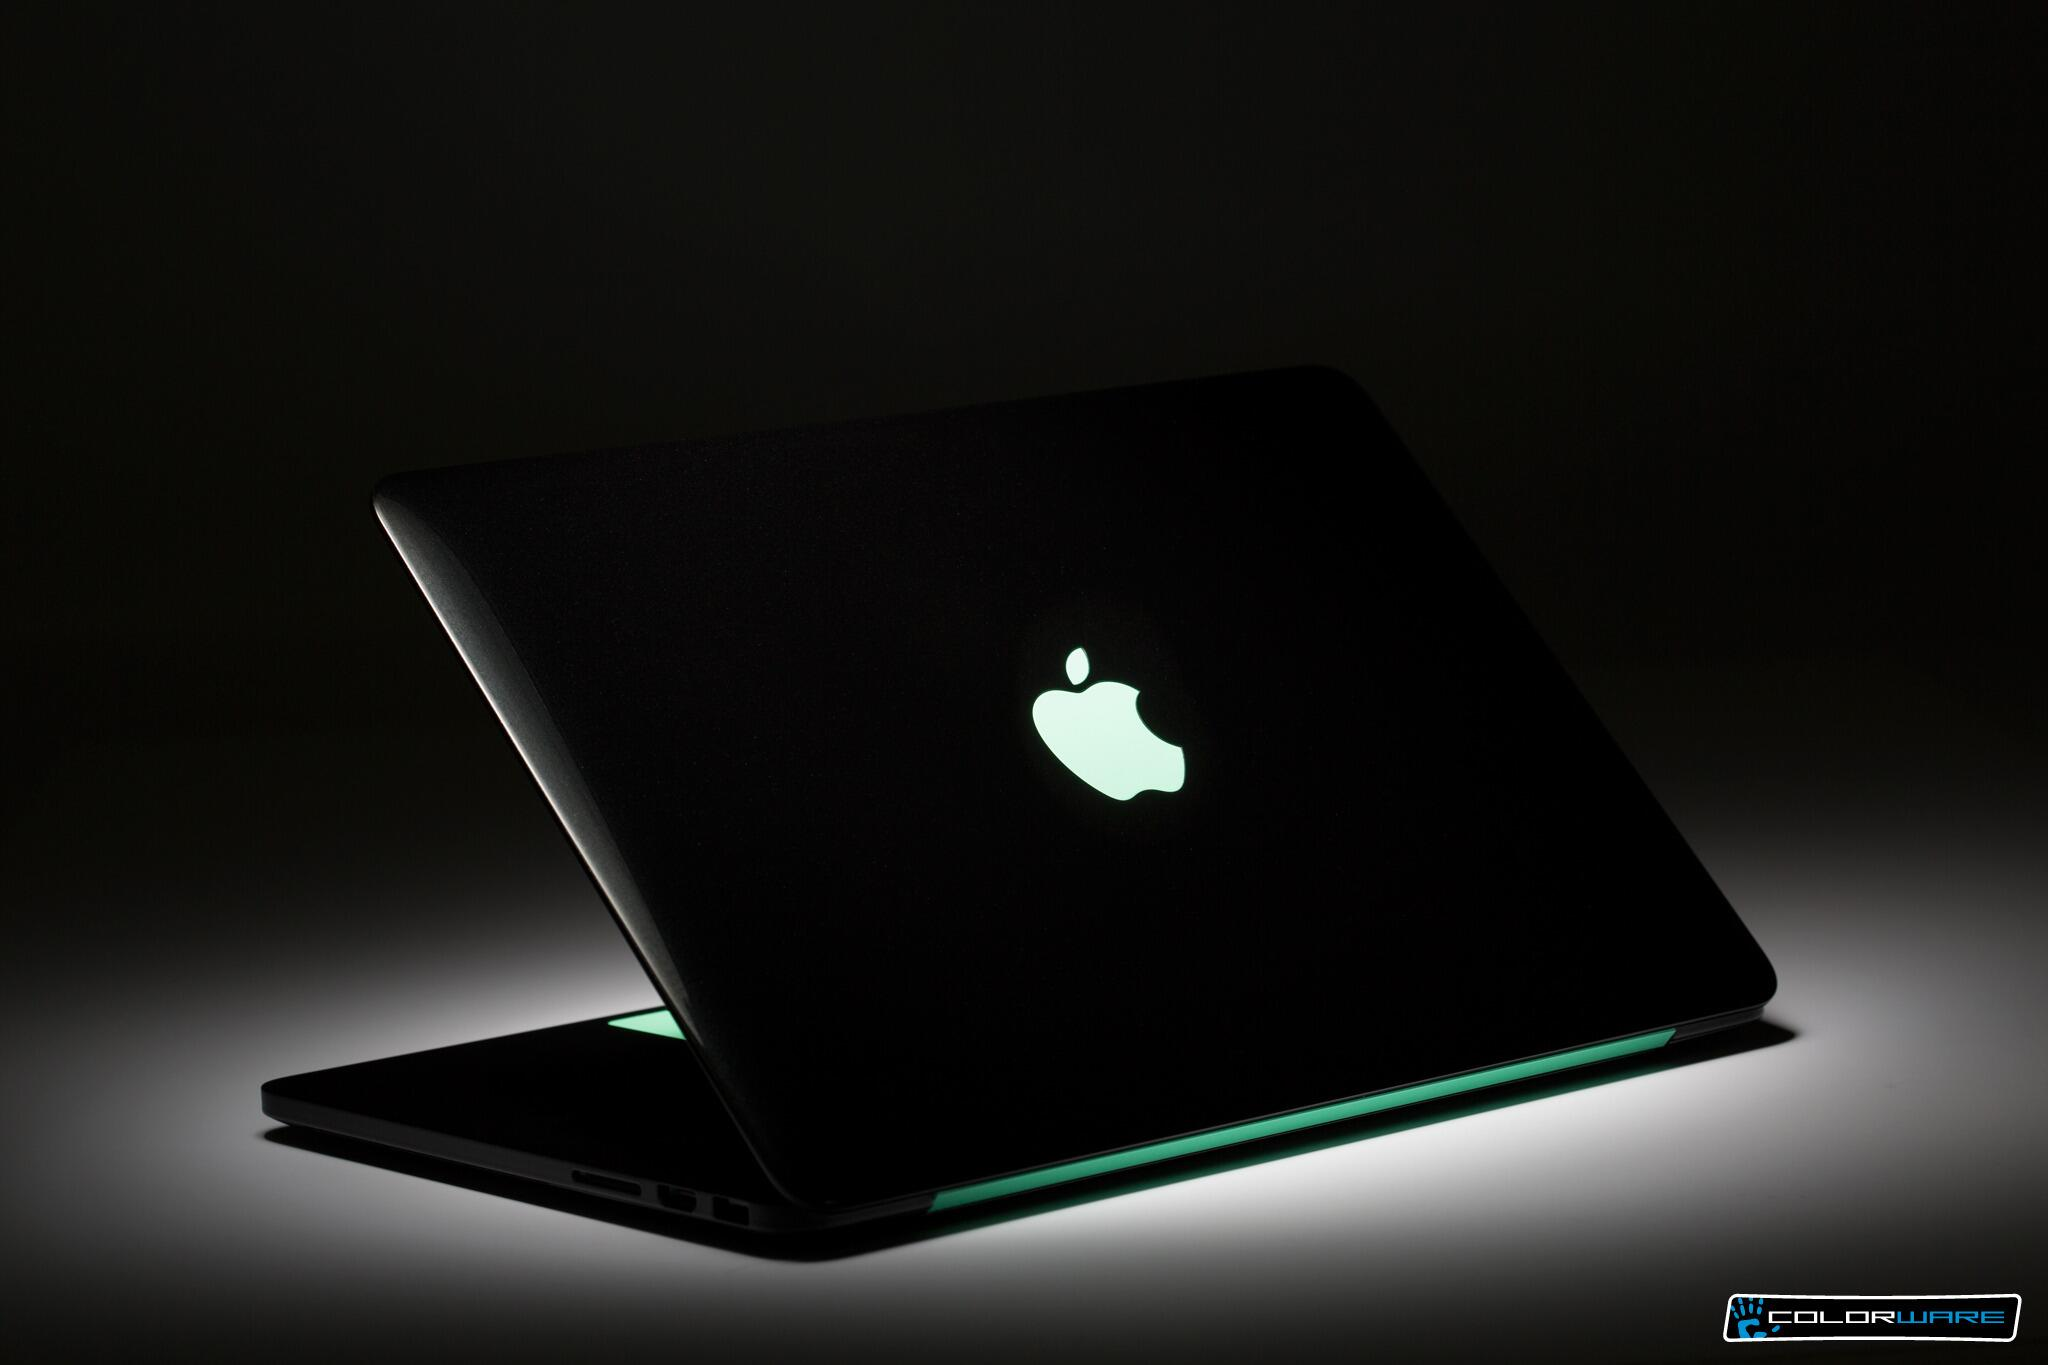 Do you like this Black #MacBookPro....Yes or No? #colorware http://t.co/iTb9wt75mL